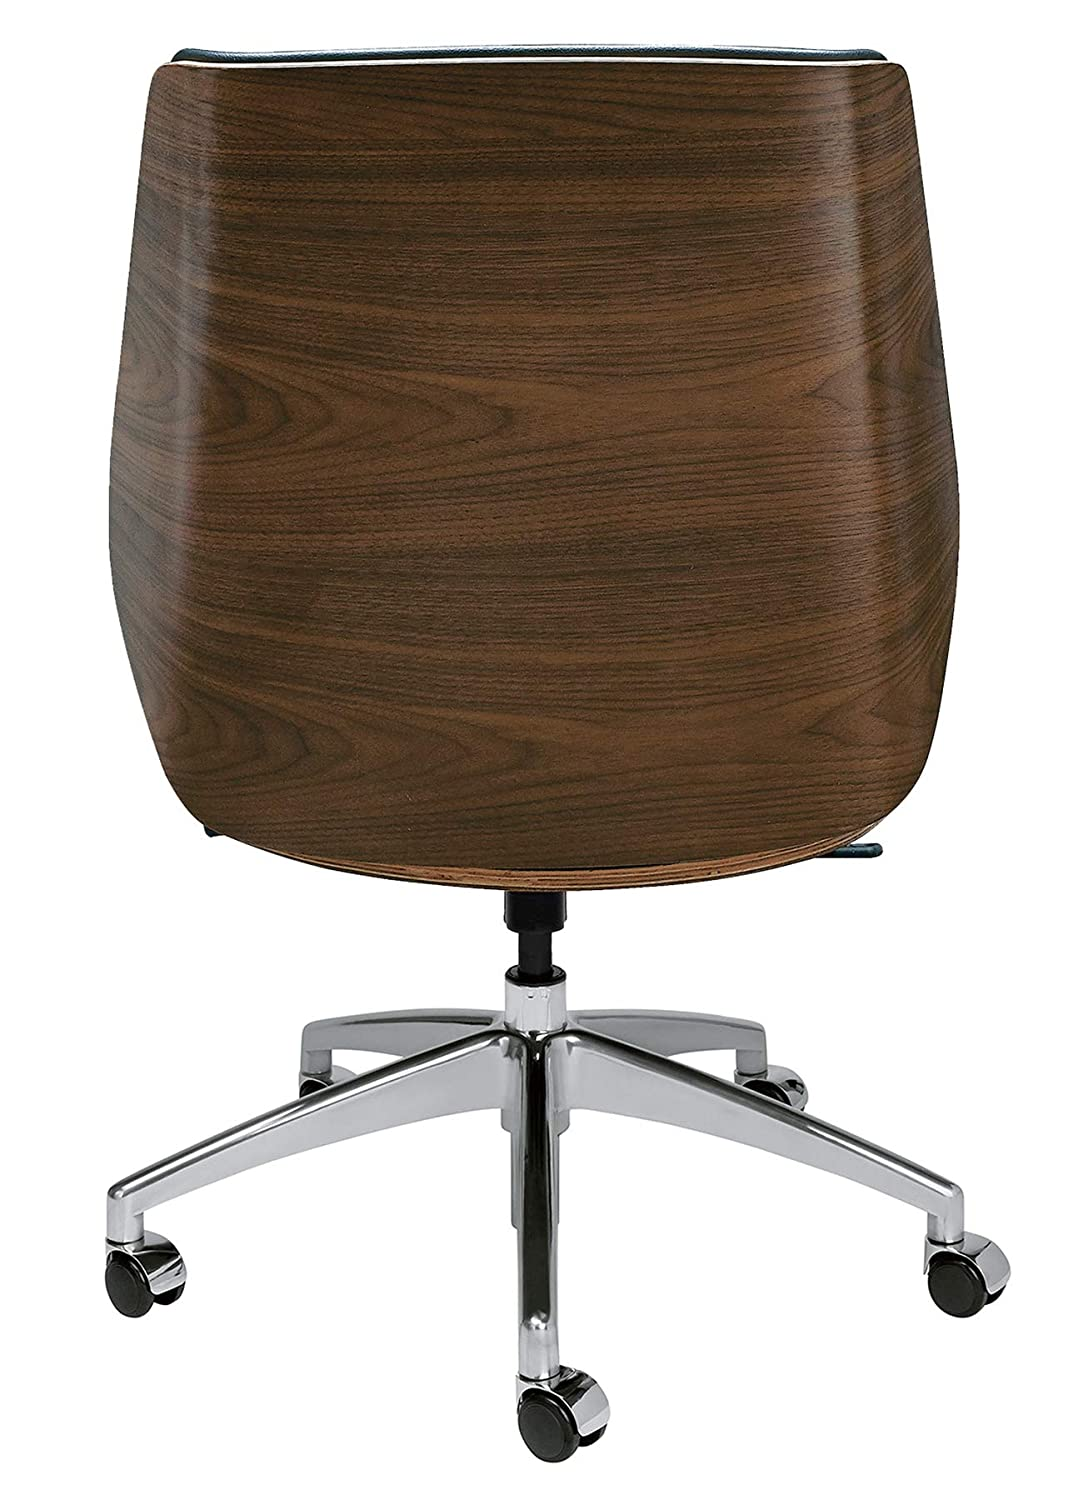 Astonishing Manhattan Mid Century Eames Style Office Chair With Vegan Leather And Wood Mid Back Black Interior Design Ideas Inesswwsoteloinfo